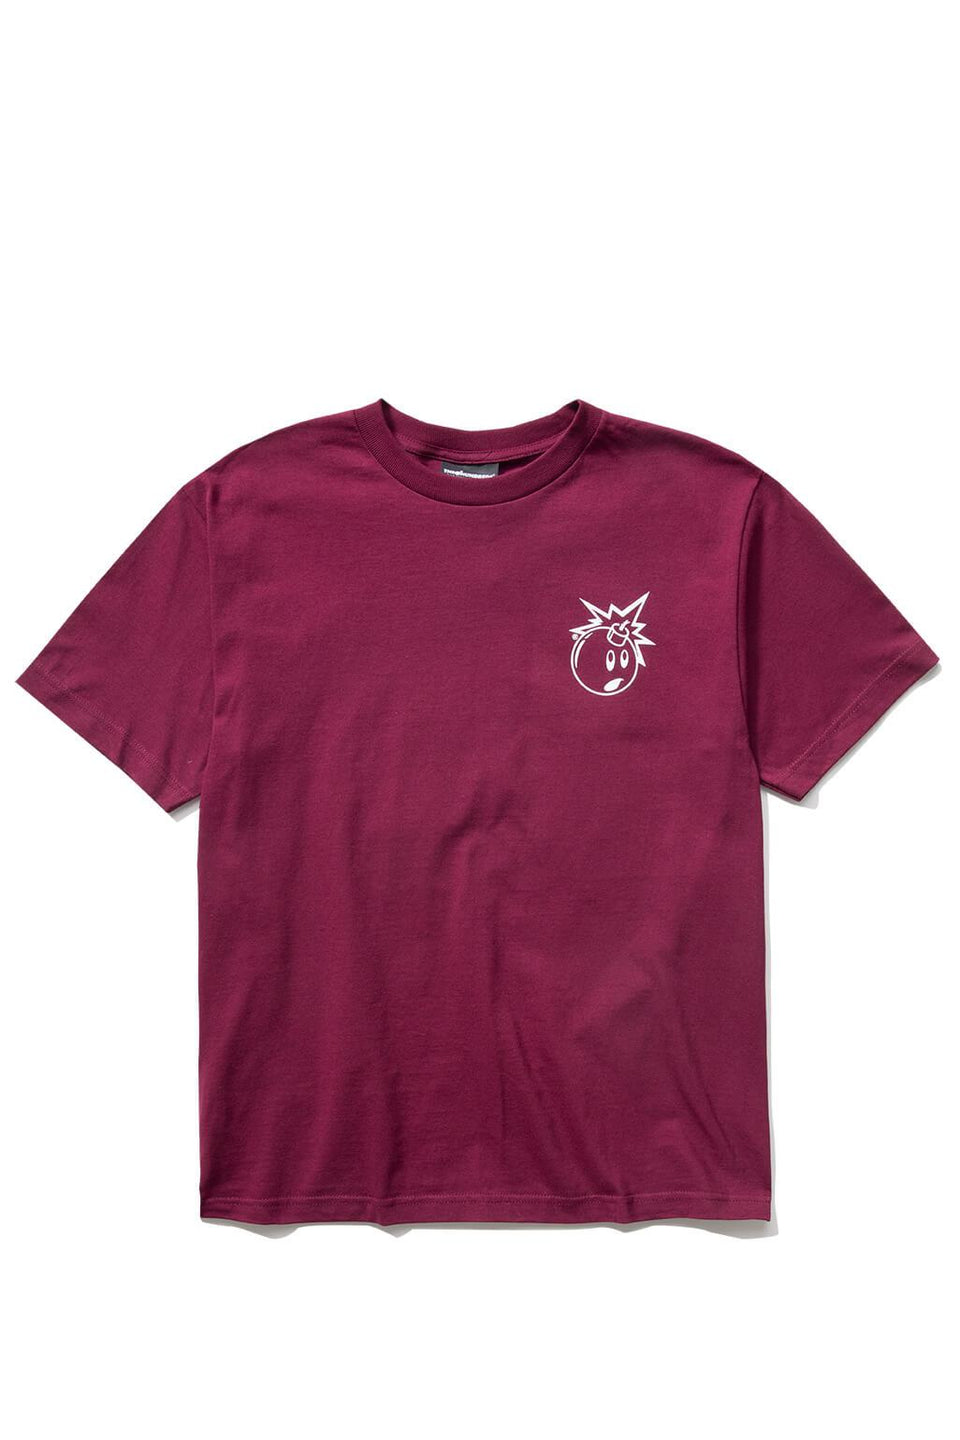 Forever Simple Adam T-Shirt Burgundy Front